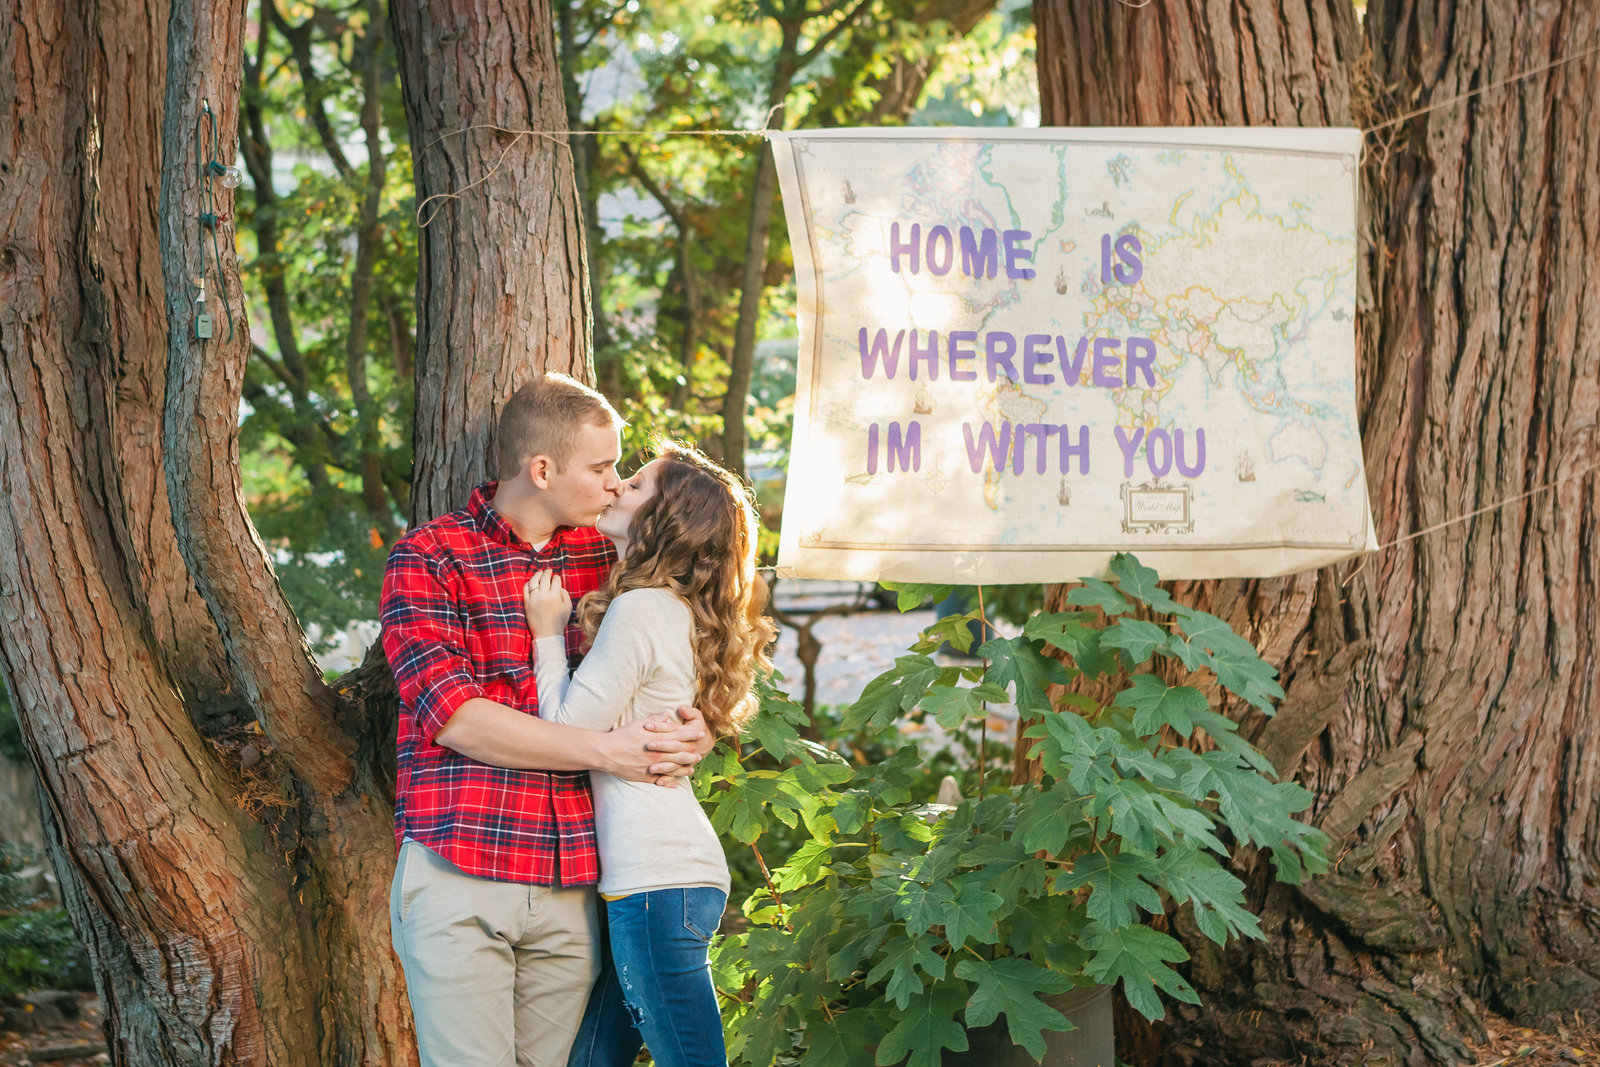 Auburn engaged couple with a sign under trees